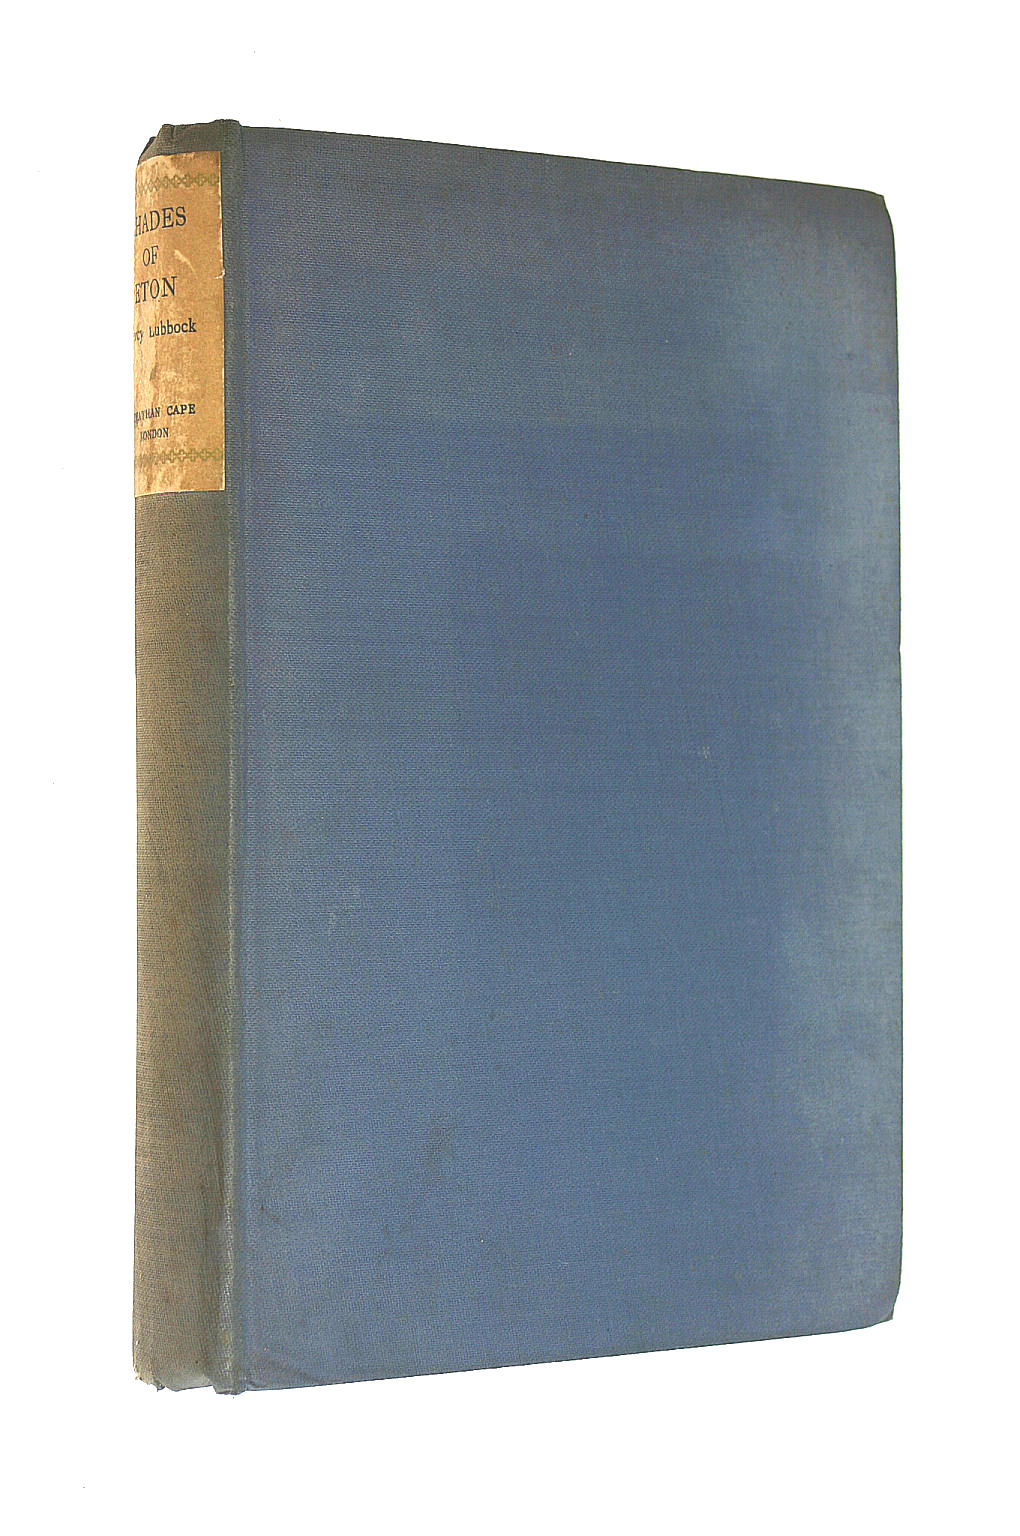 Image for Shades of Eton, by Percy Lubbock